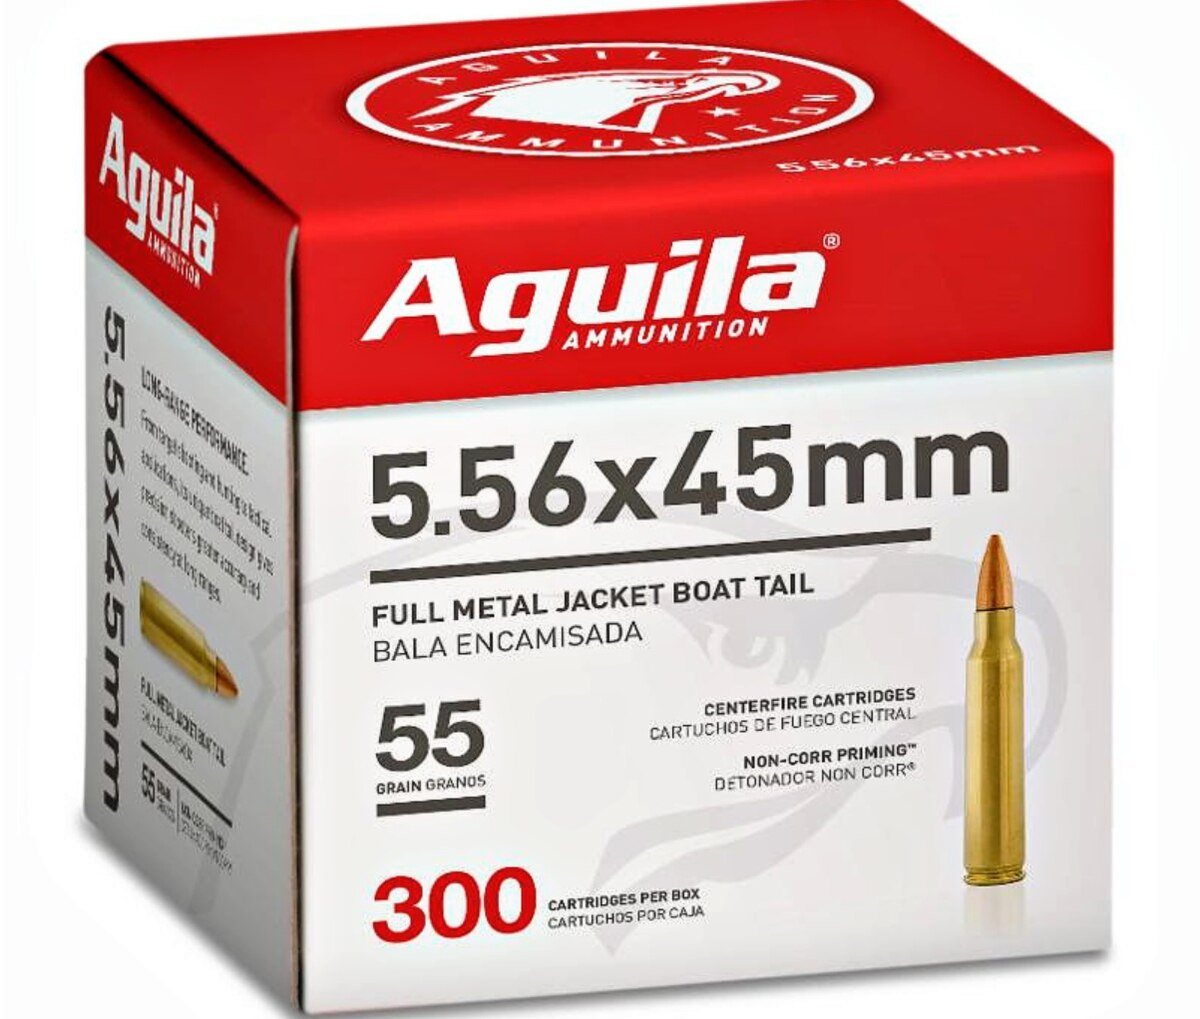 Aguila Ammunition brings bulk 5.56 rifle ammo to US shooters.